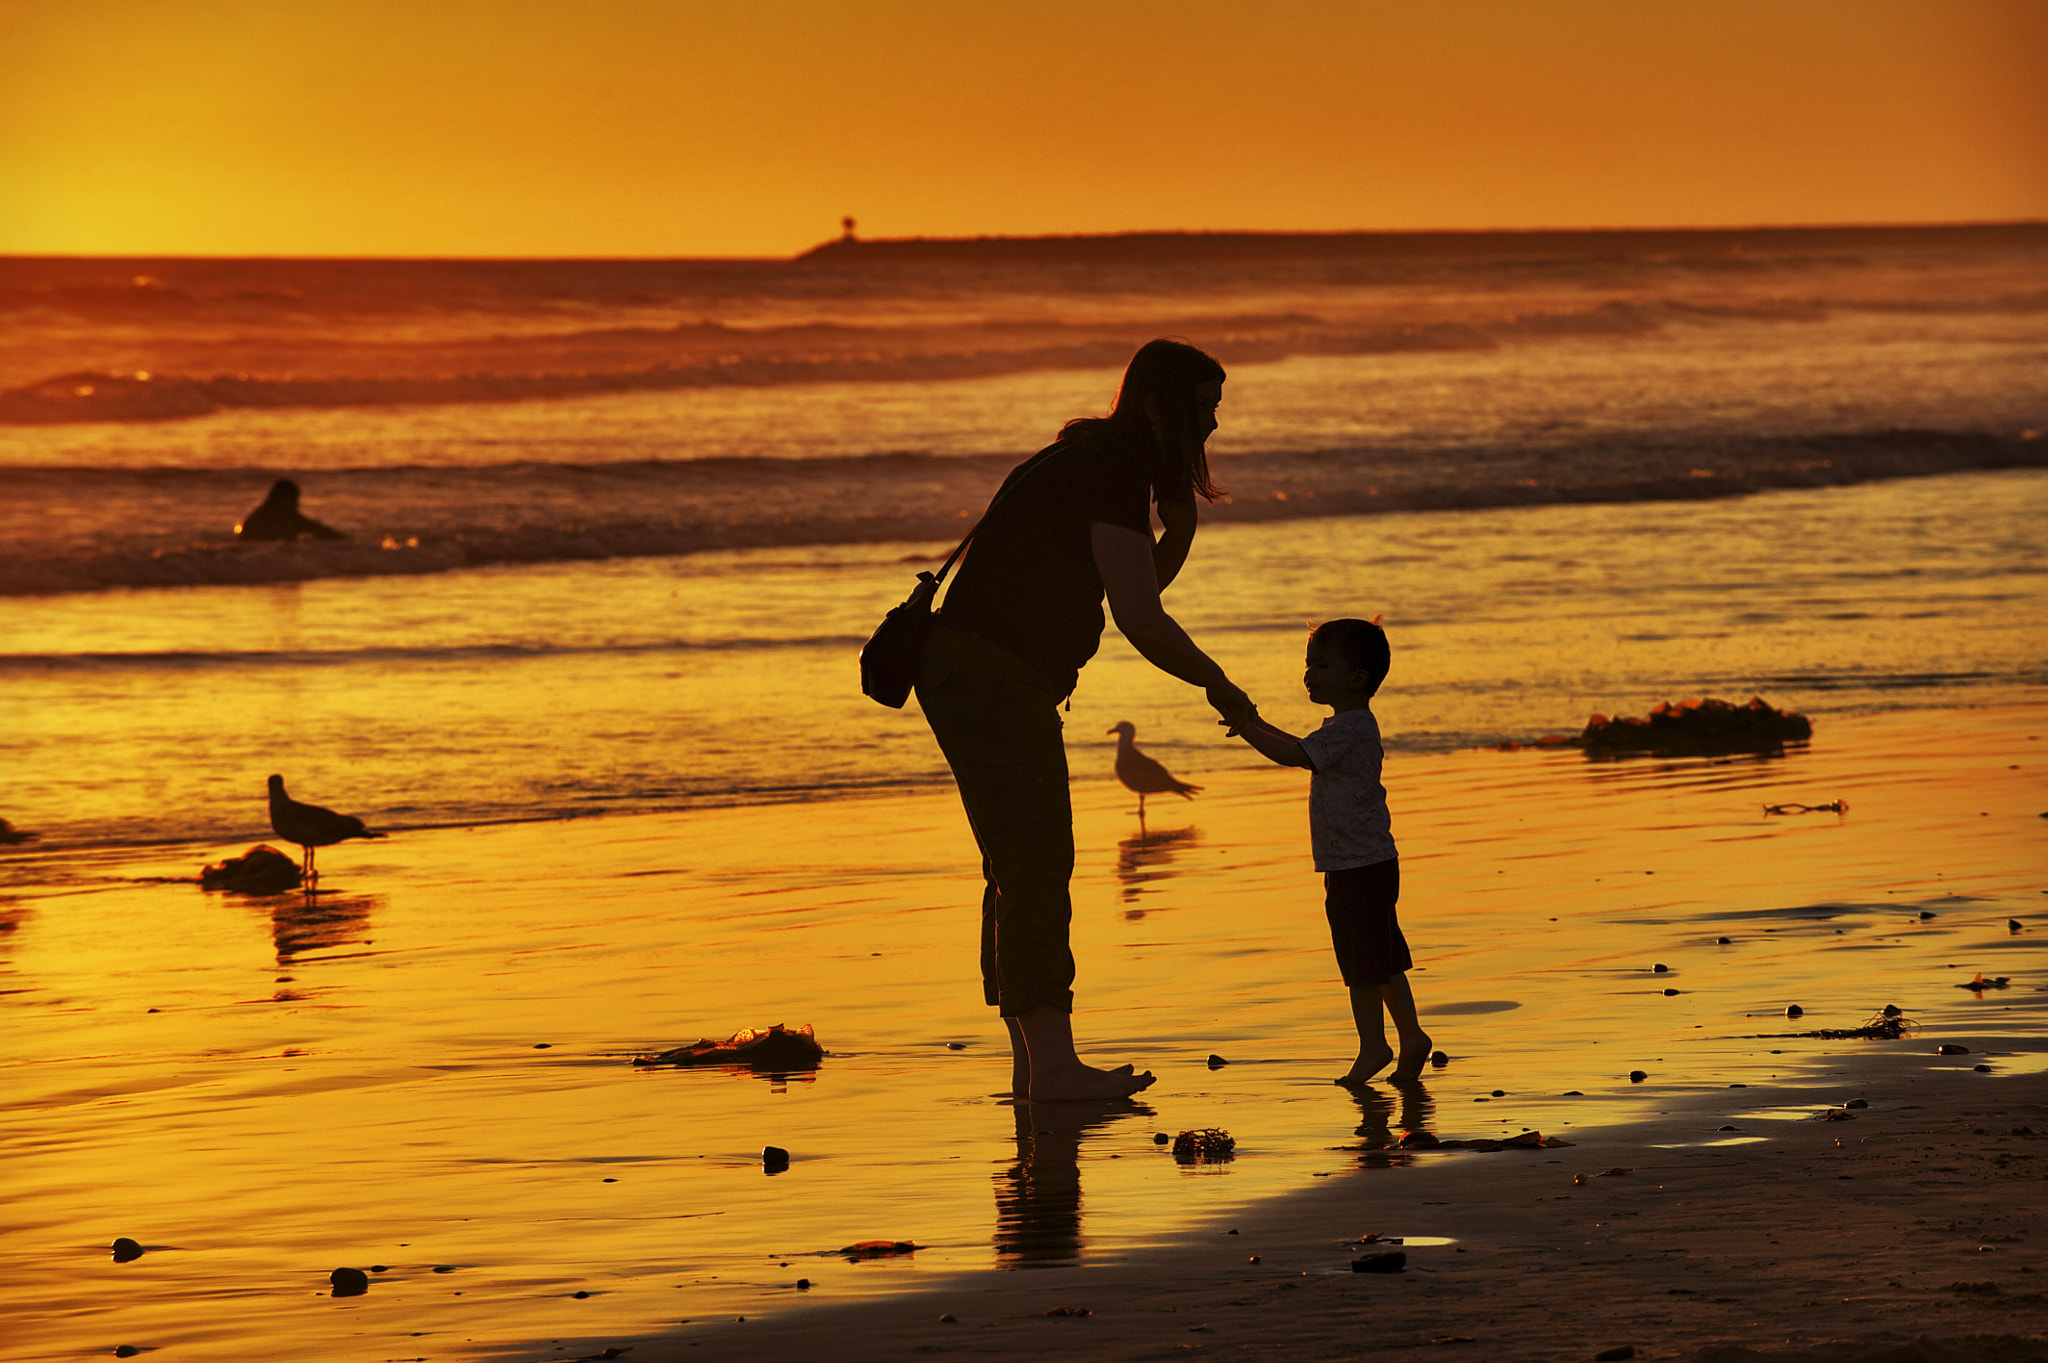 Photograph Mom and Son at Sunset in Oceanside- July 8, 2012 by Rich Cruse on 500px